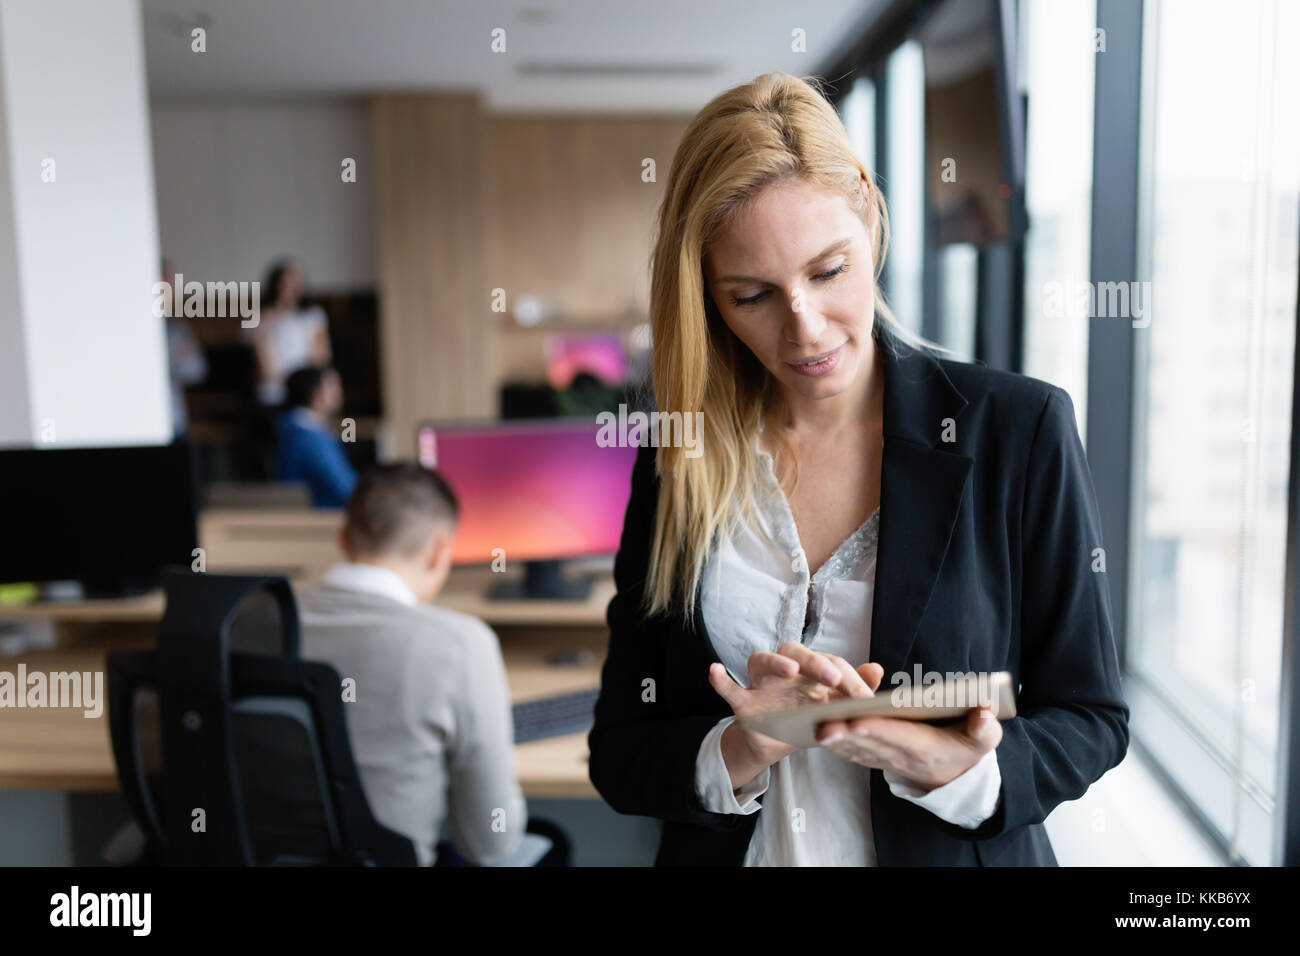 Beautiful businesswoman using digital tablet in office - Stock Image